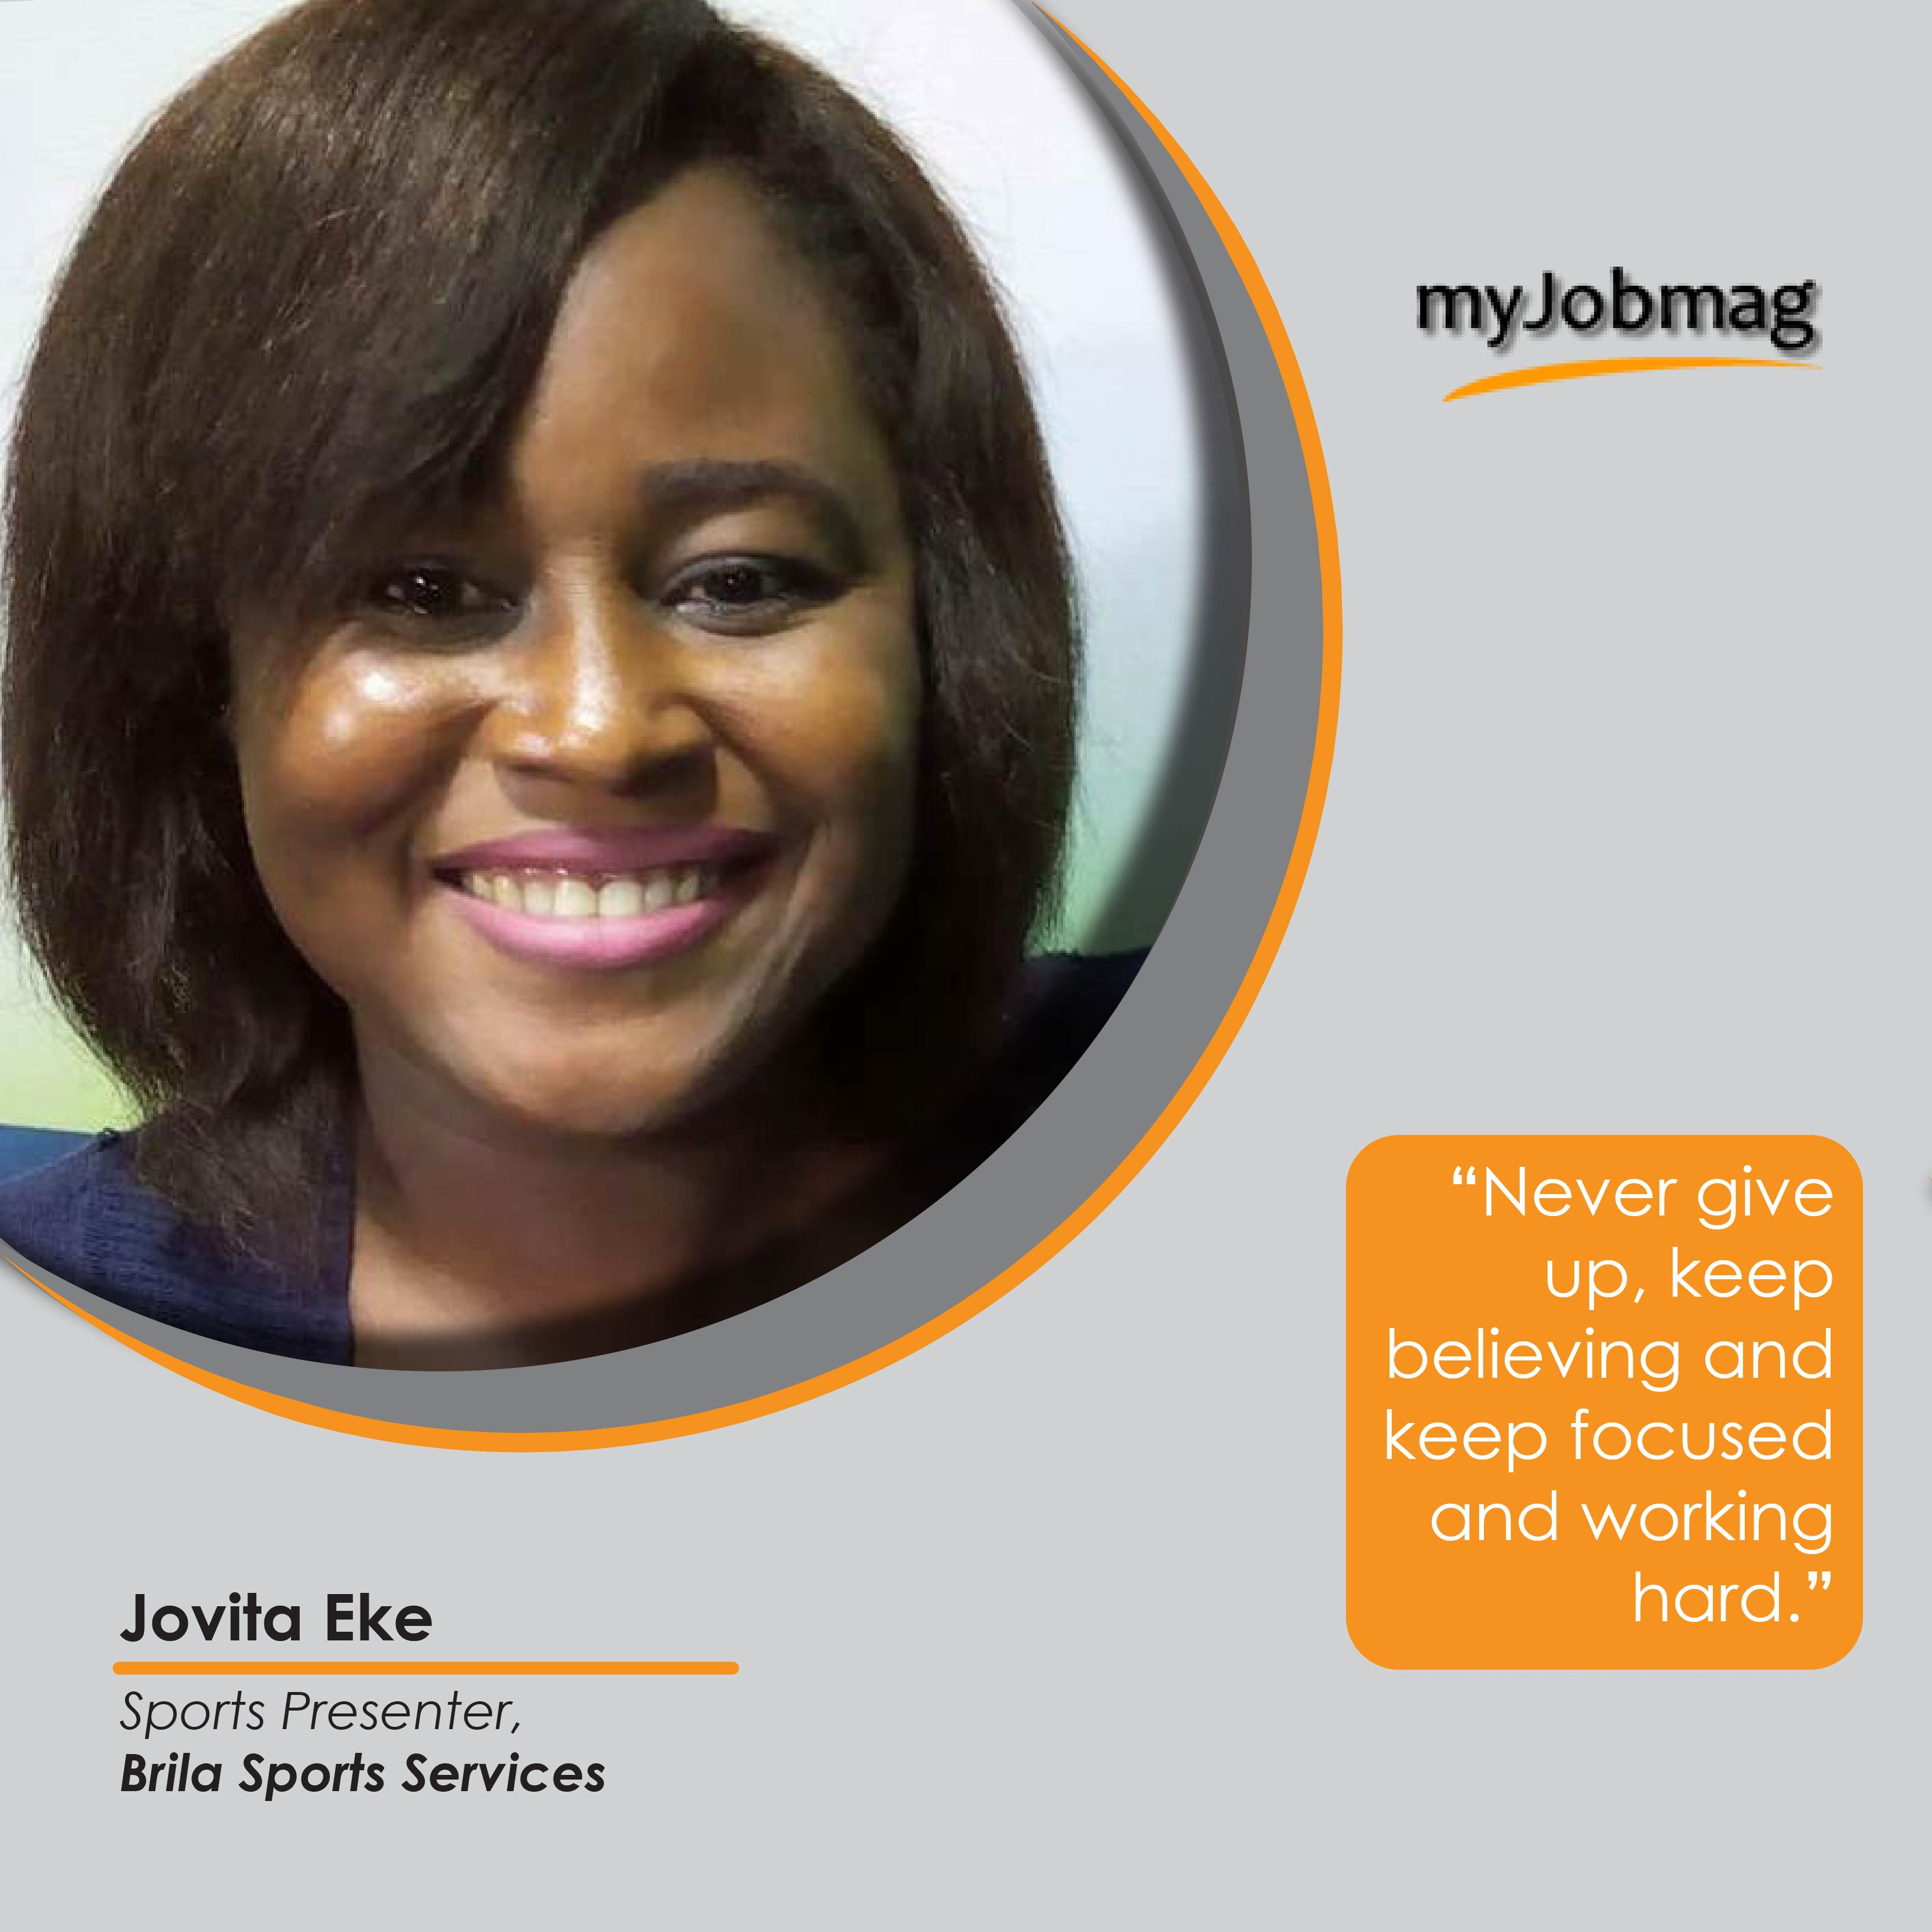 Jovita Eke career advice MyJobMag